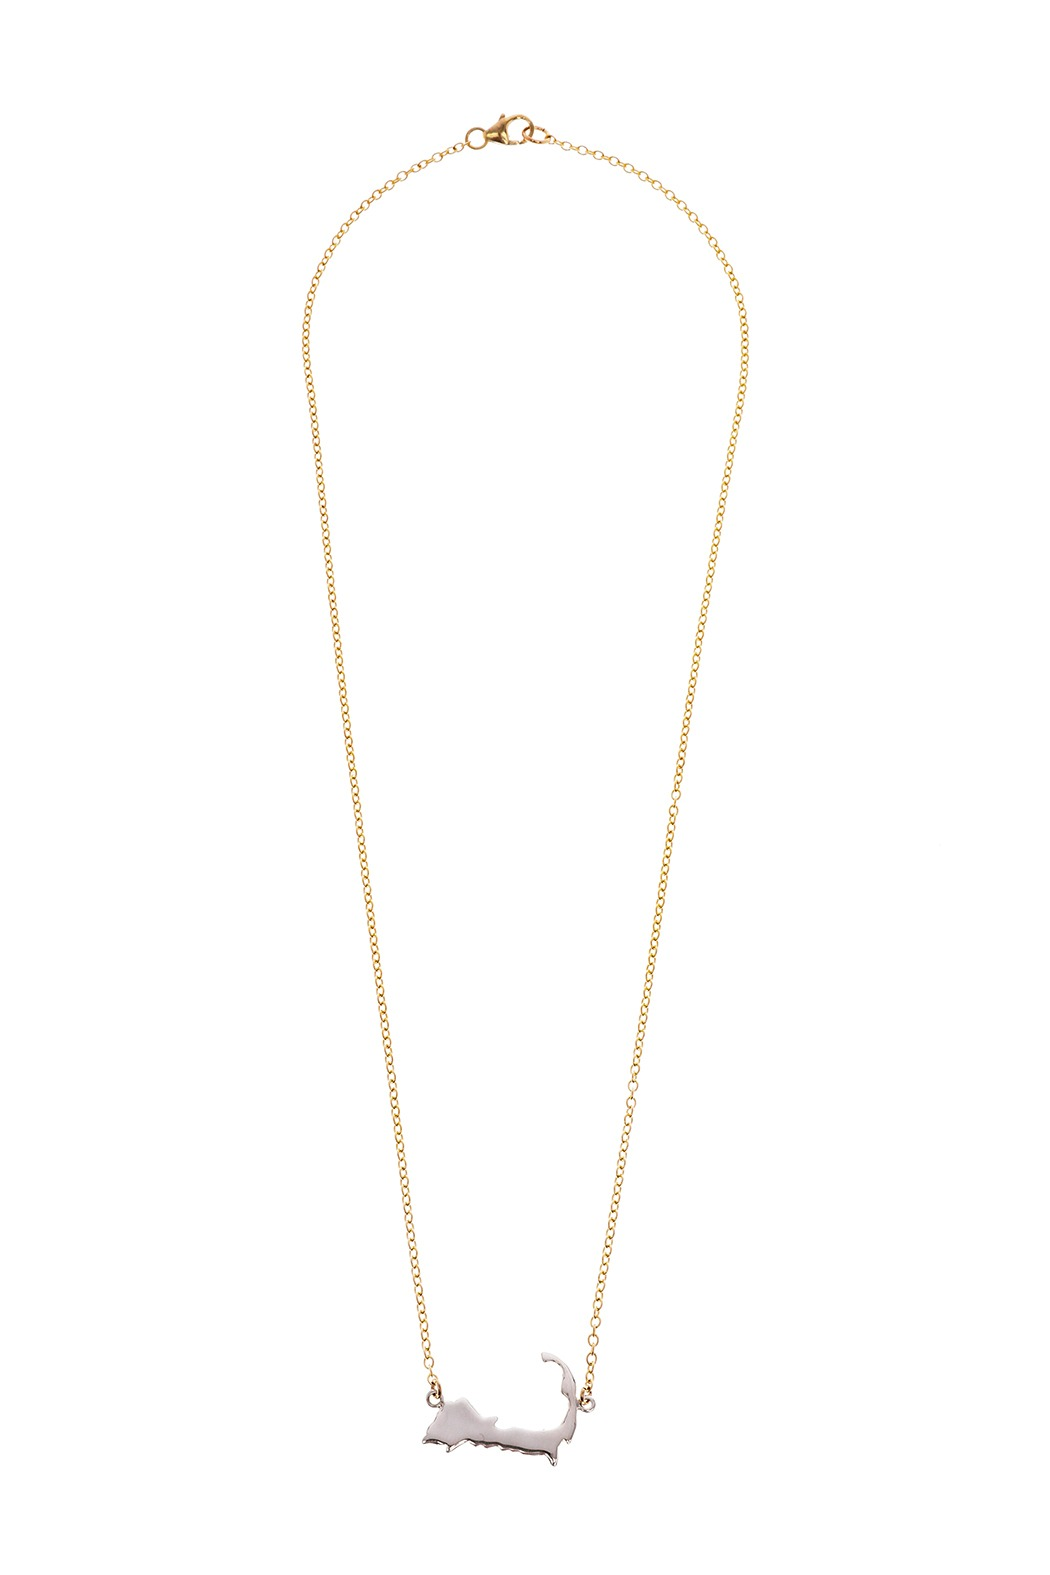 Jewelry Studio Of Wellfleet Two Toned Silhouette Necklace From